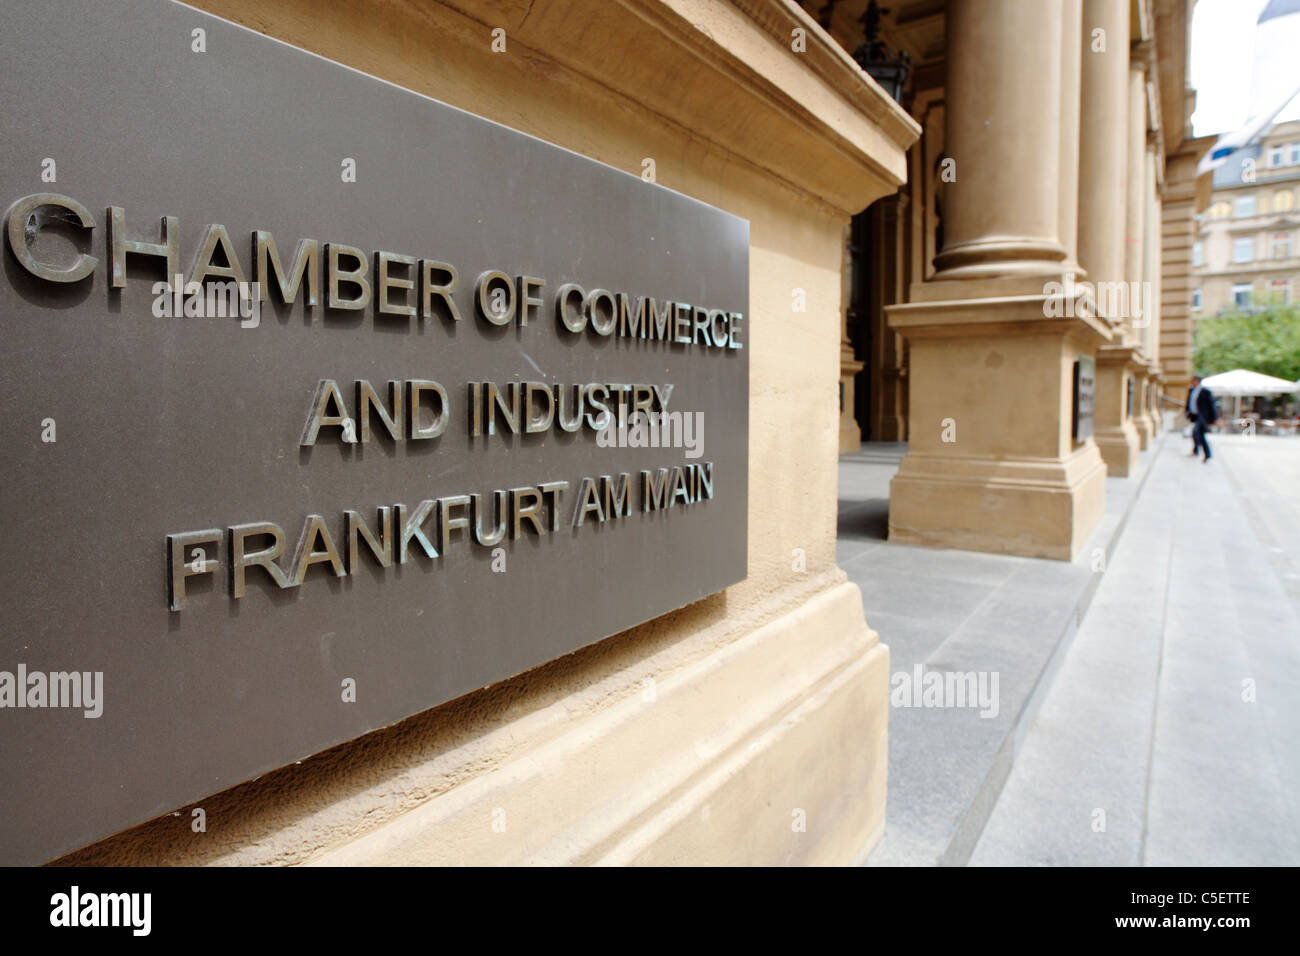 Chambre de Commerce et d'Industrie de Frankfurt am Main, Allemagne Photo Stock